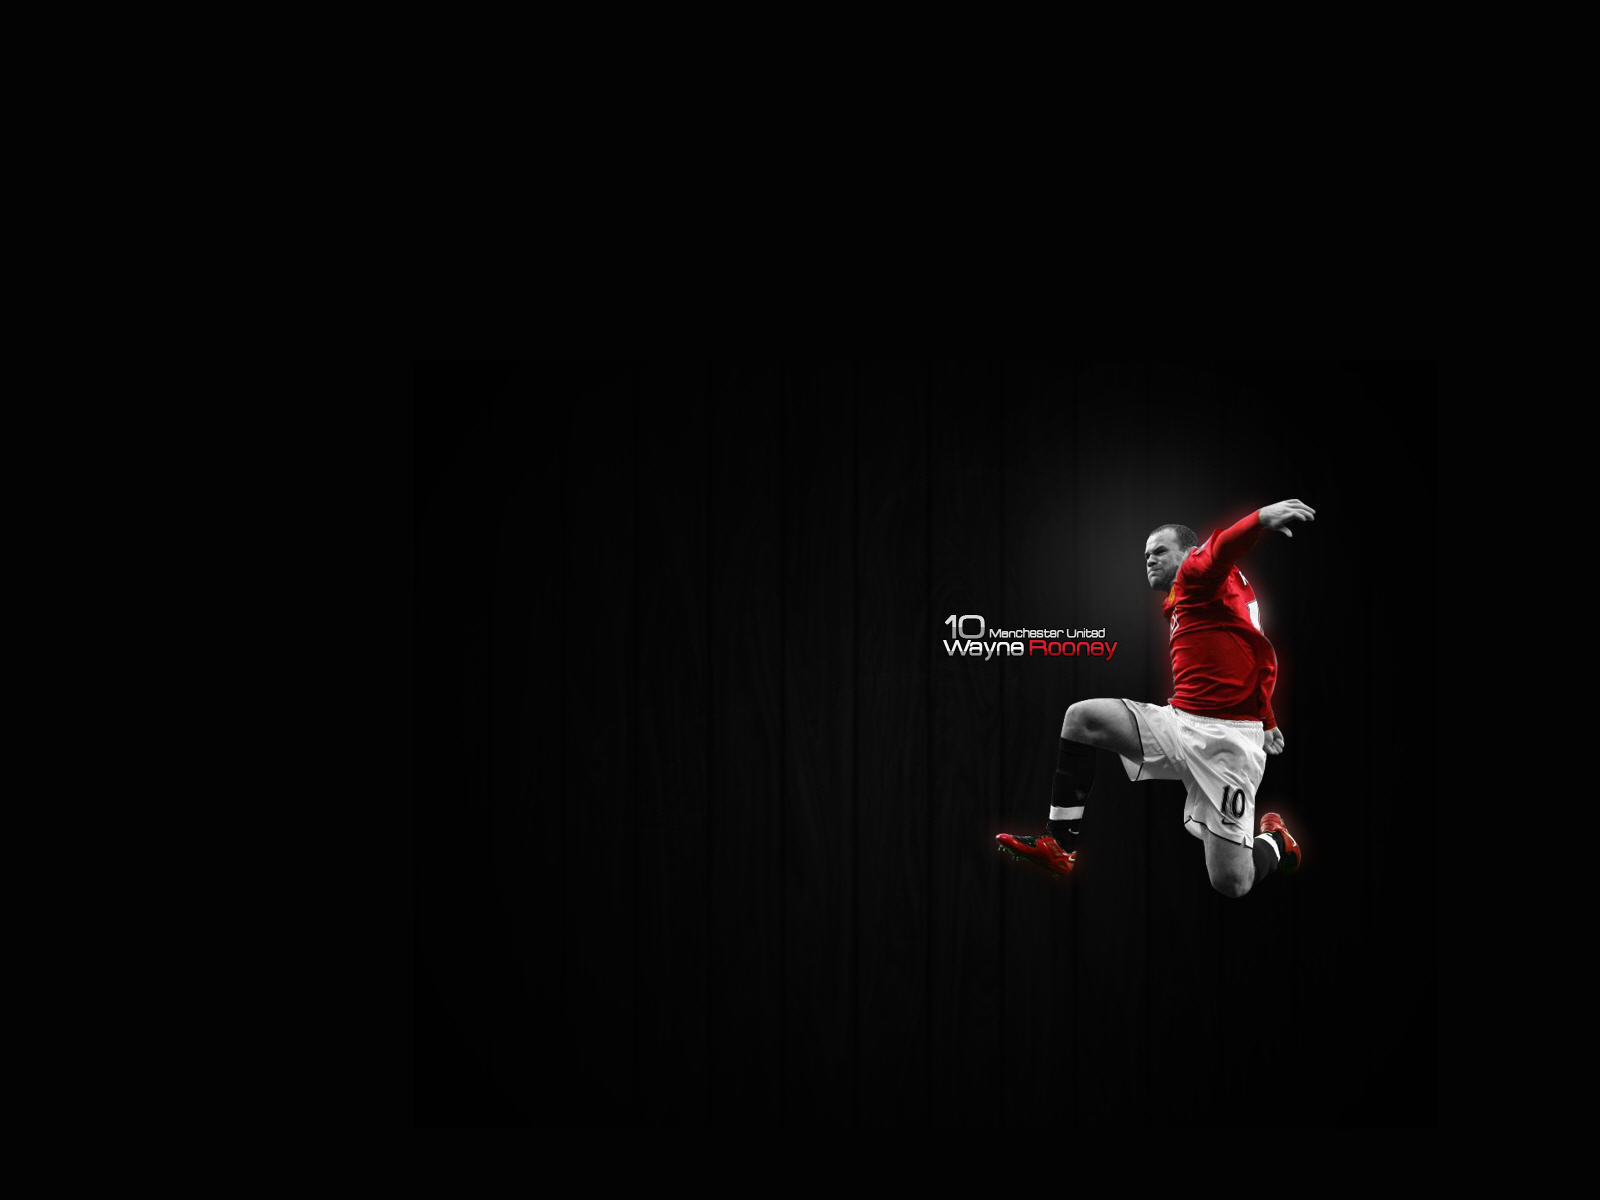 thierry henry hd wallpapers